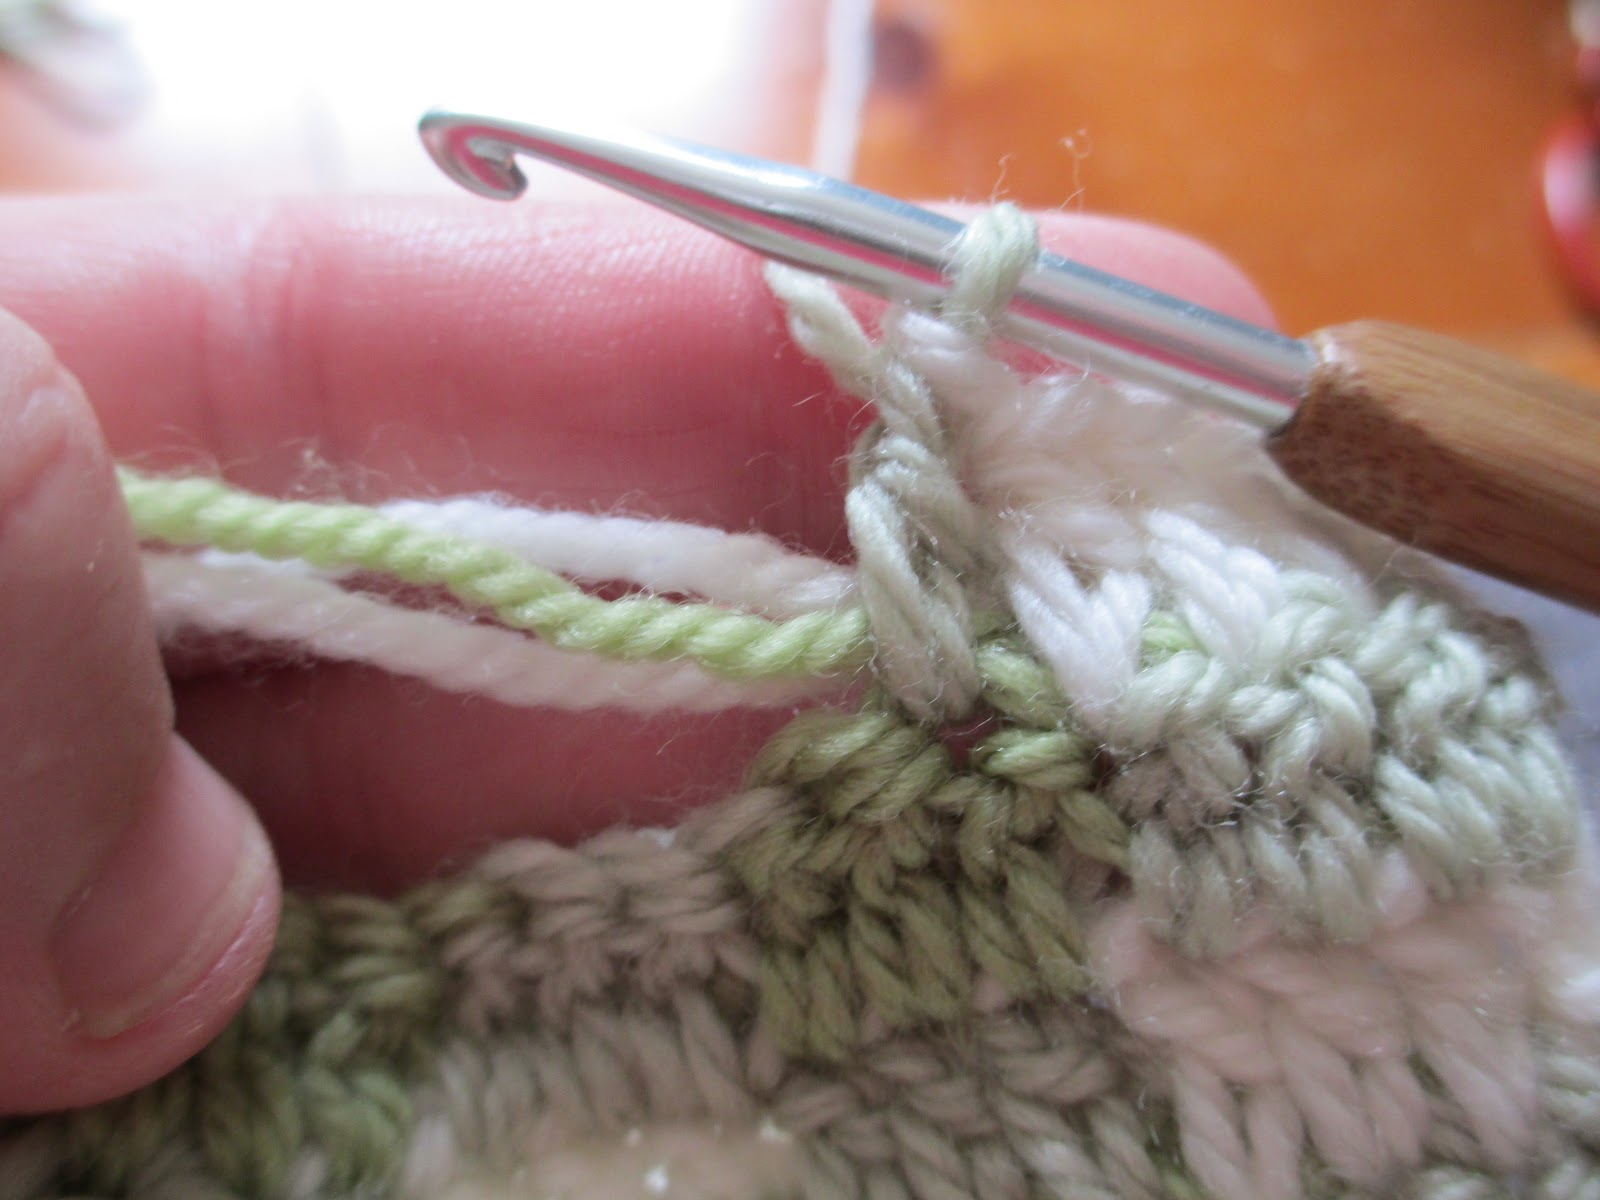 ... crochet the next stitches over the remaining ends and the cream yarn